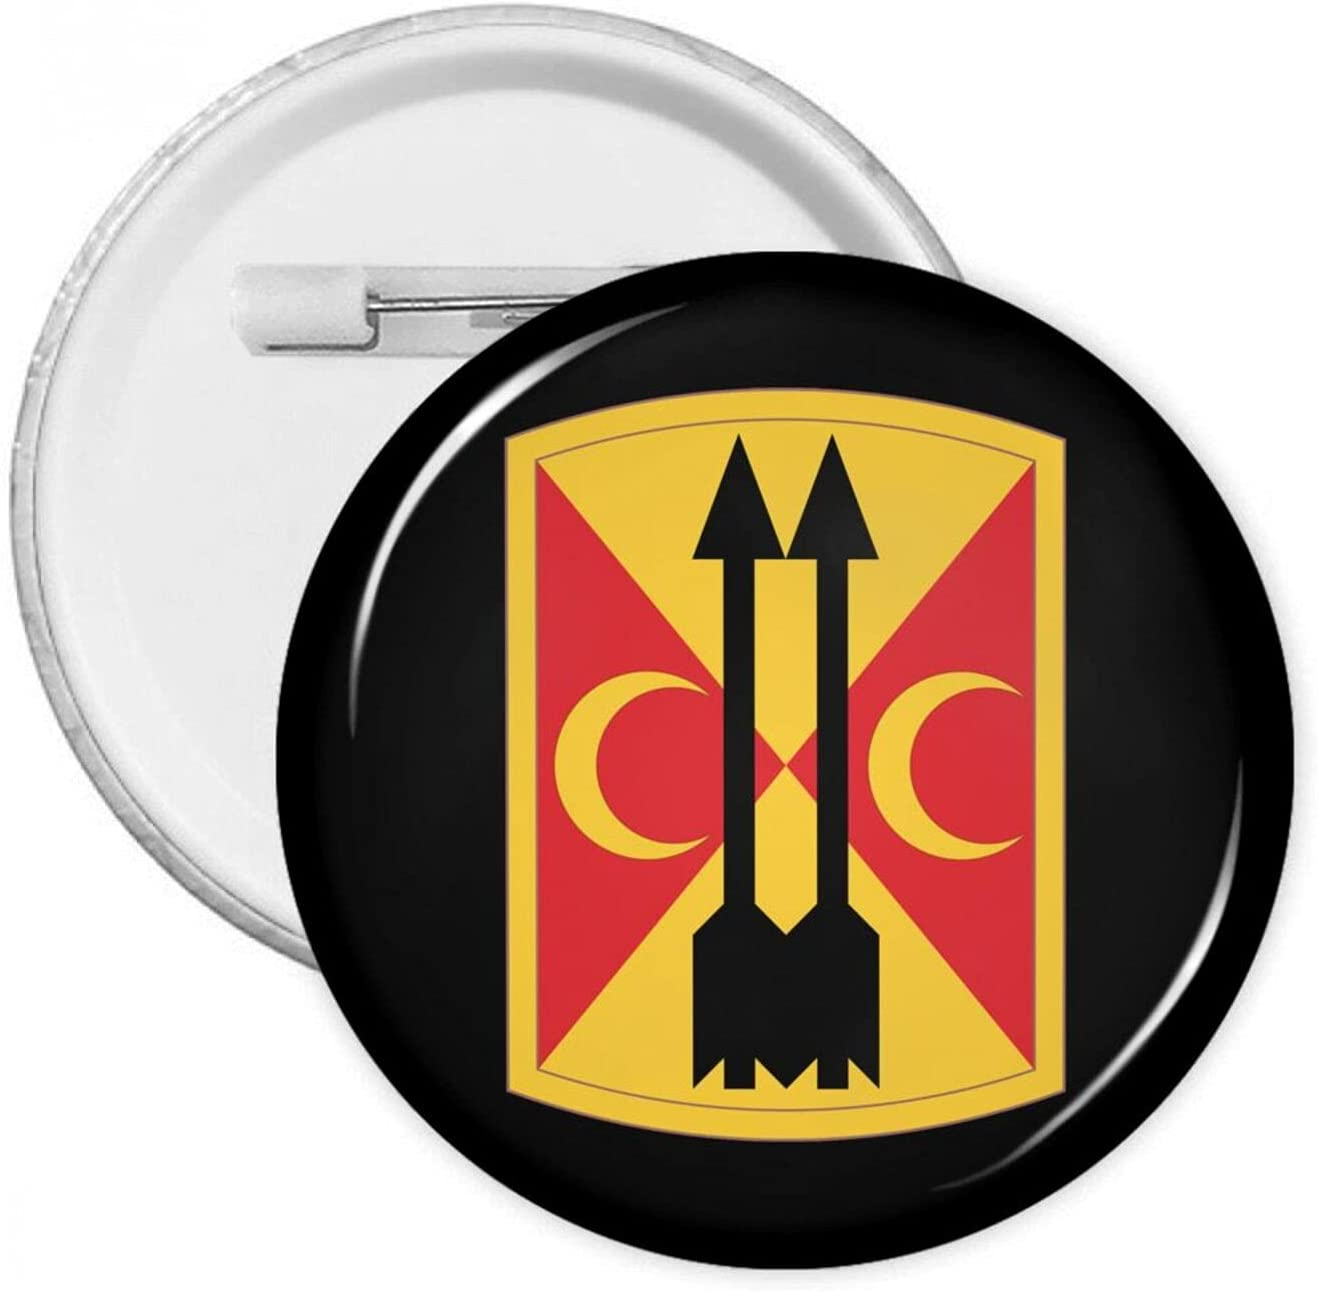 212th Field Artillery Brigade 1.2/1.8/2.3 Inch Round Pins Brooches Button Medal Tinplate Pin Emblem Adult Children Pin Badges Decor for Backpacks Costume